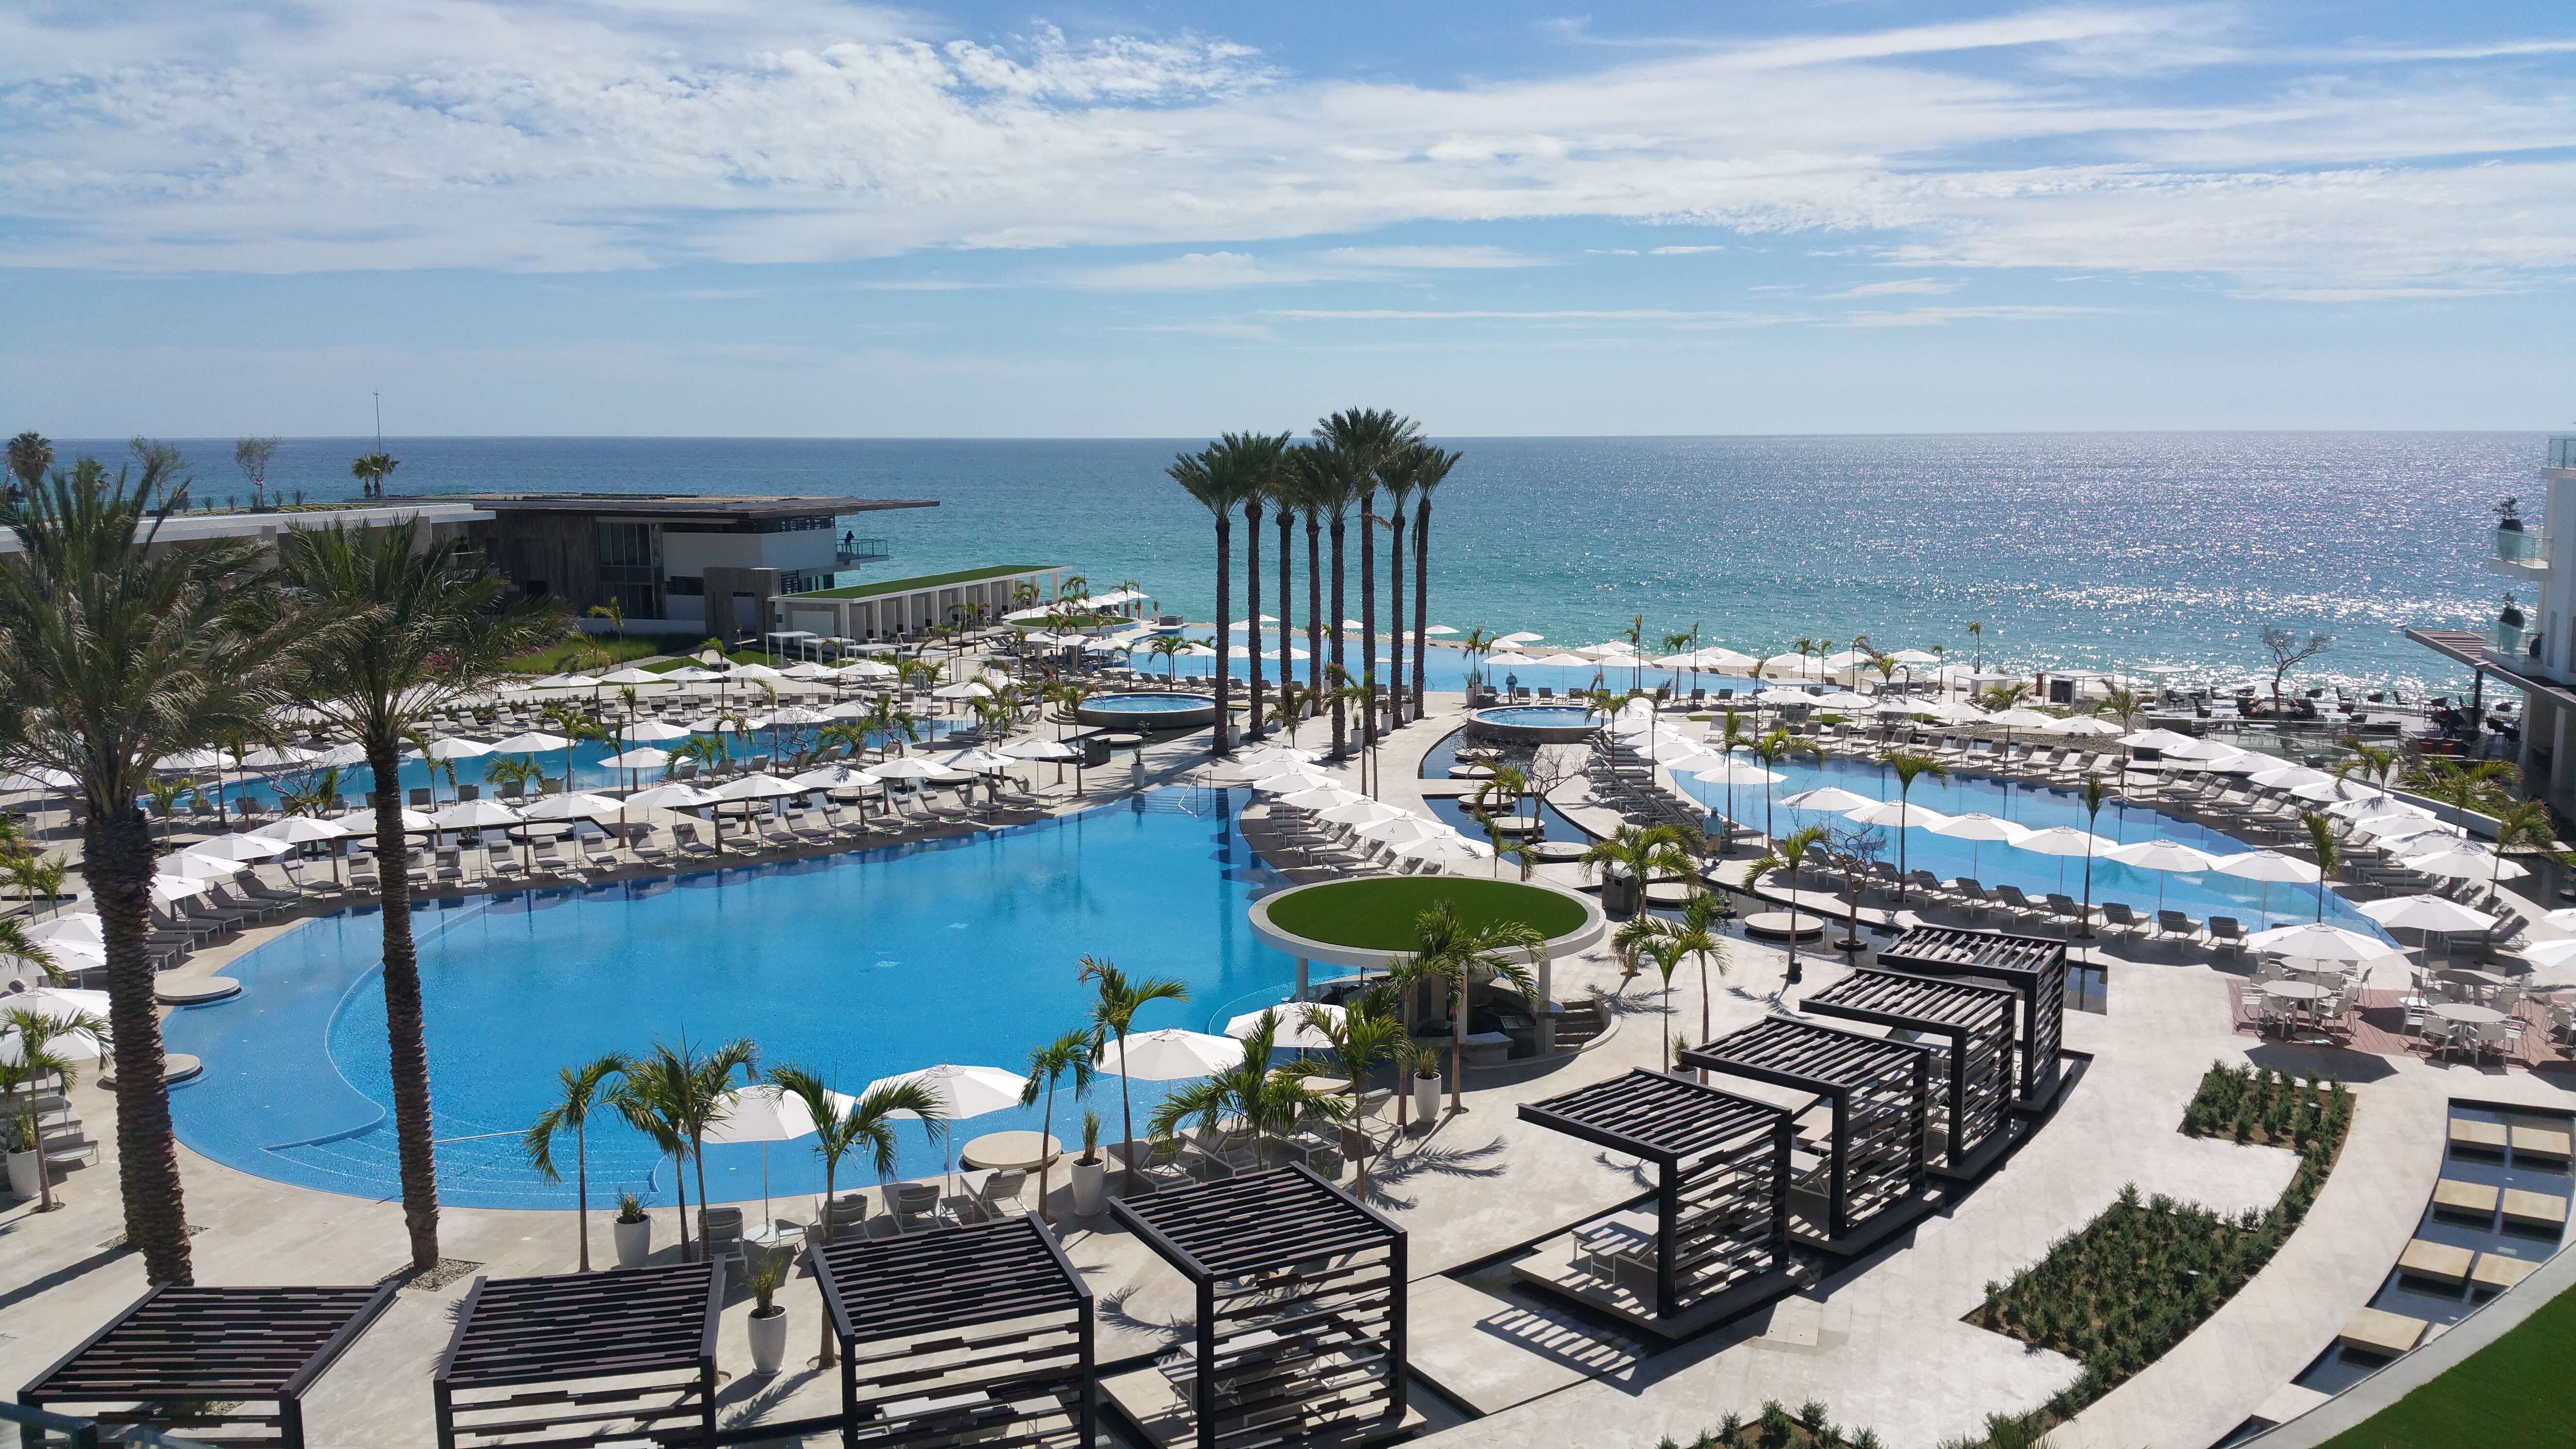 Le Blanc Spa Resort Cabo - Site Review - Modern, Luxurious, and Adults Only. Need I say more?